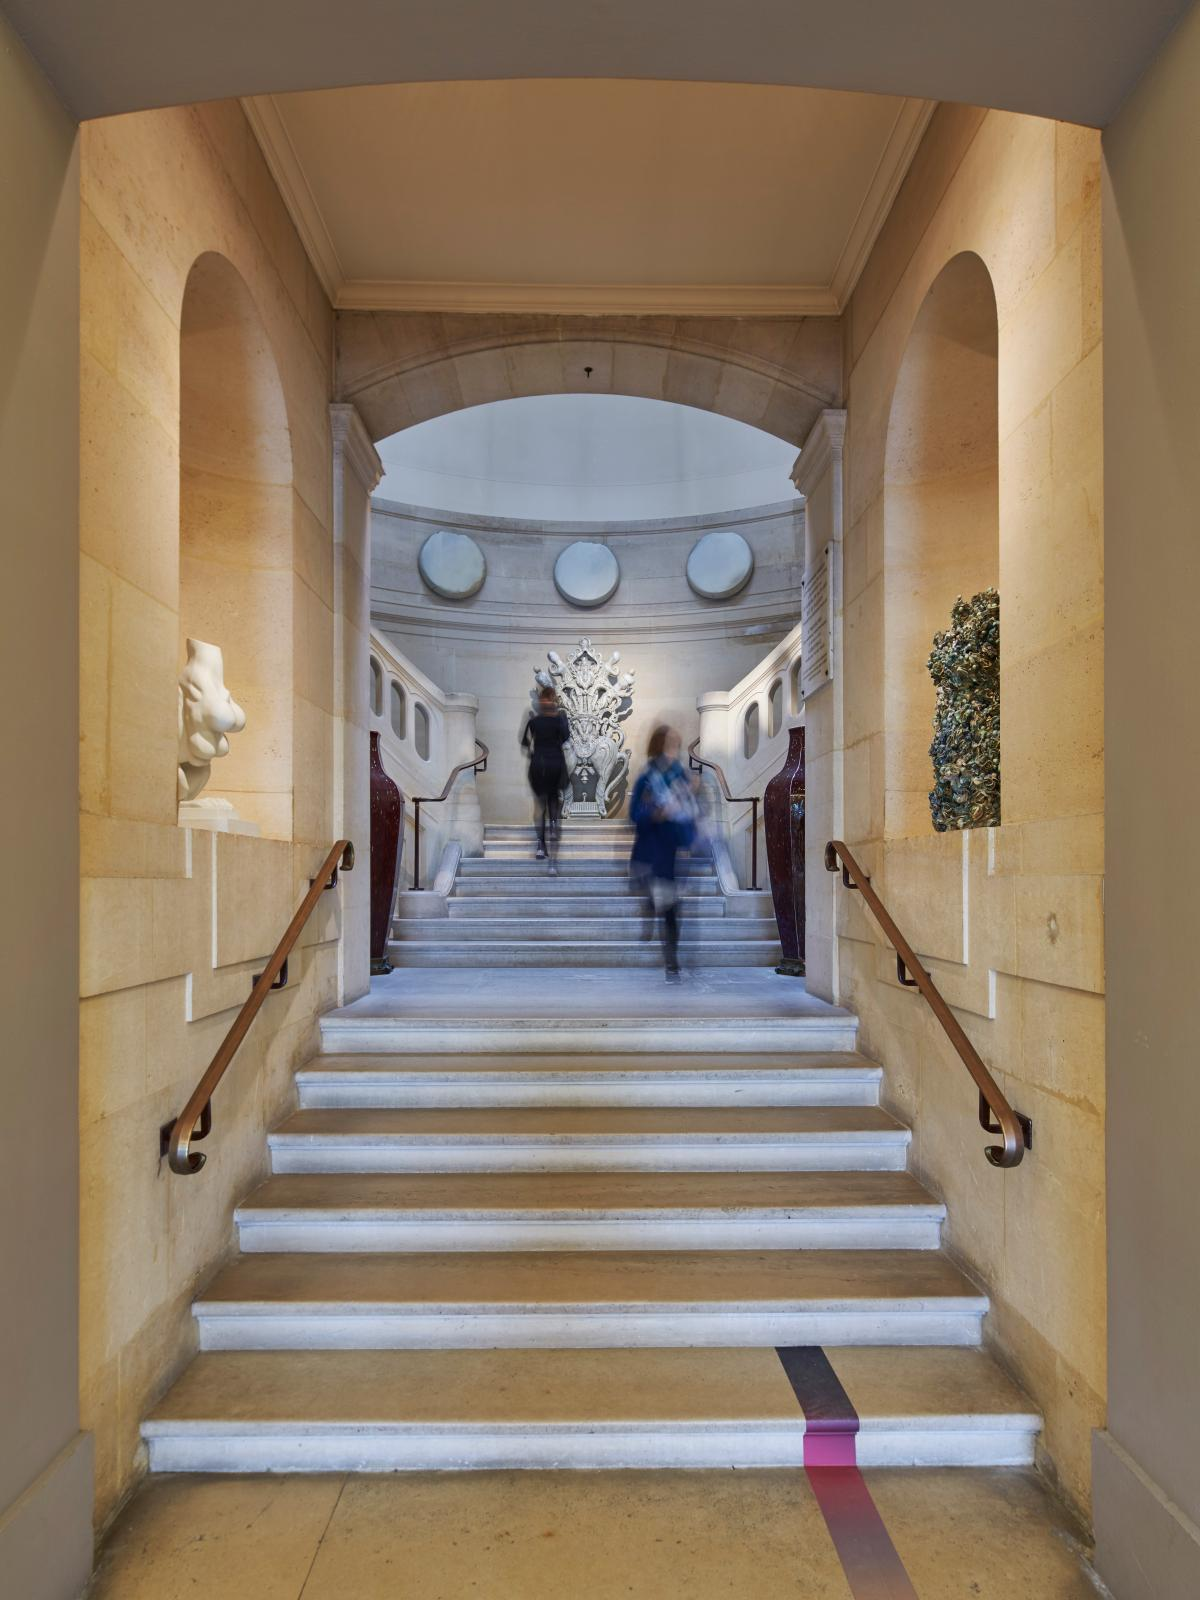 Rooms of the National Ceramic Museum © David Giancatarina / Sèvres - National Manufactory and Museum